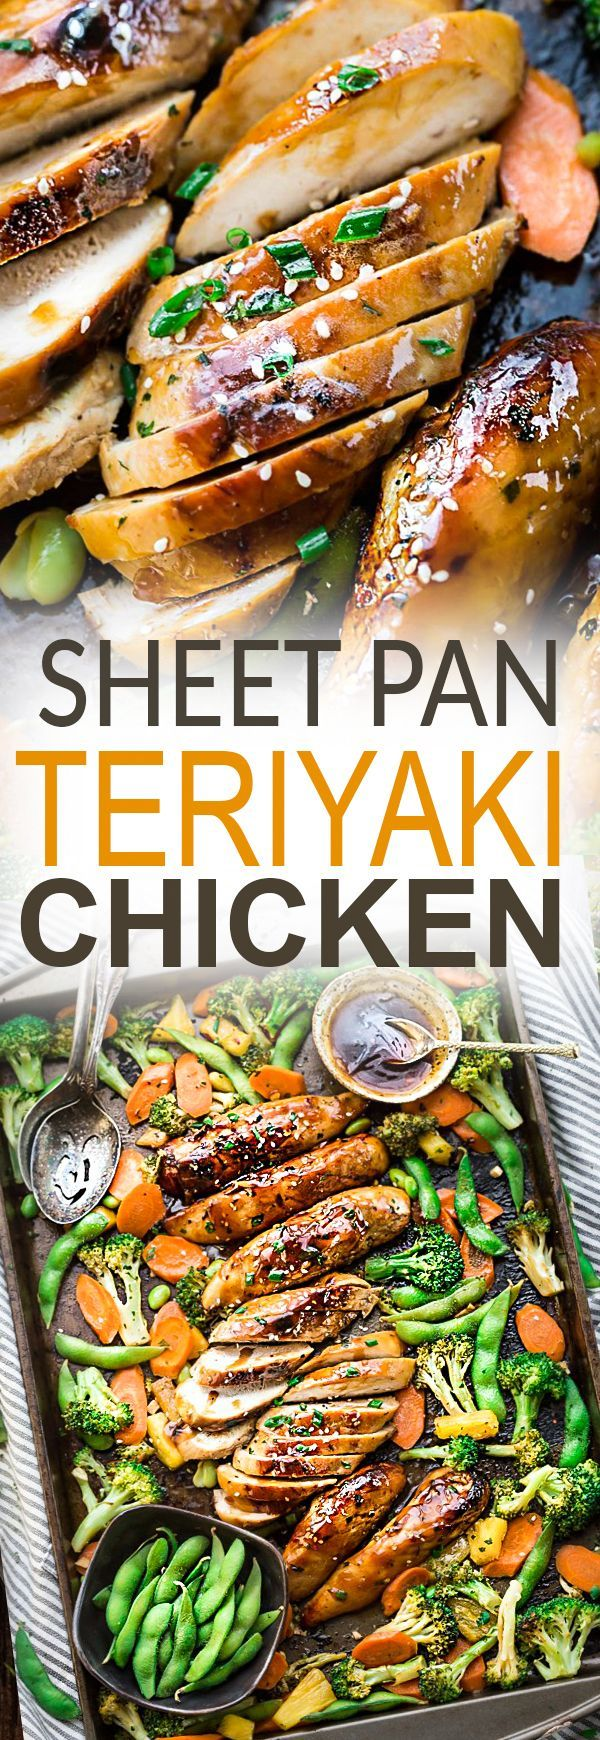 One Sheet Pan Teriyaki Chicken with broccoli, carrots and edamame makes the perfect easy weeknight meal that is even better than your local Japanese takeout restaurant! Best of all, it's full of authentic flavors and super easy to customize and make with your favorite vegetables with just 10 minutes of prep time. Skip the takeout menu! This is so much better and healthier! Weekly meal prep or leftovers are great for lunch bowls or lunchboxes for work or school.